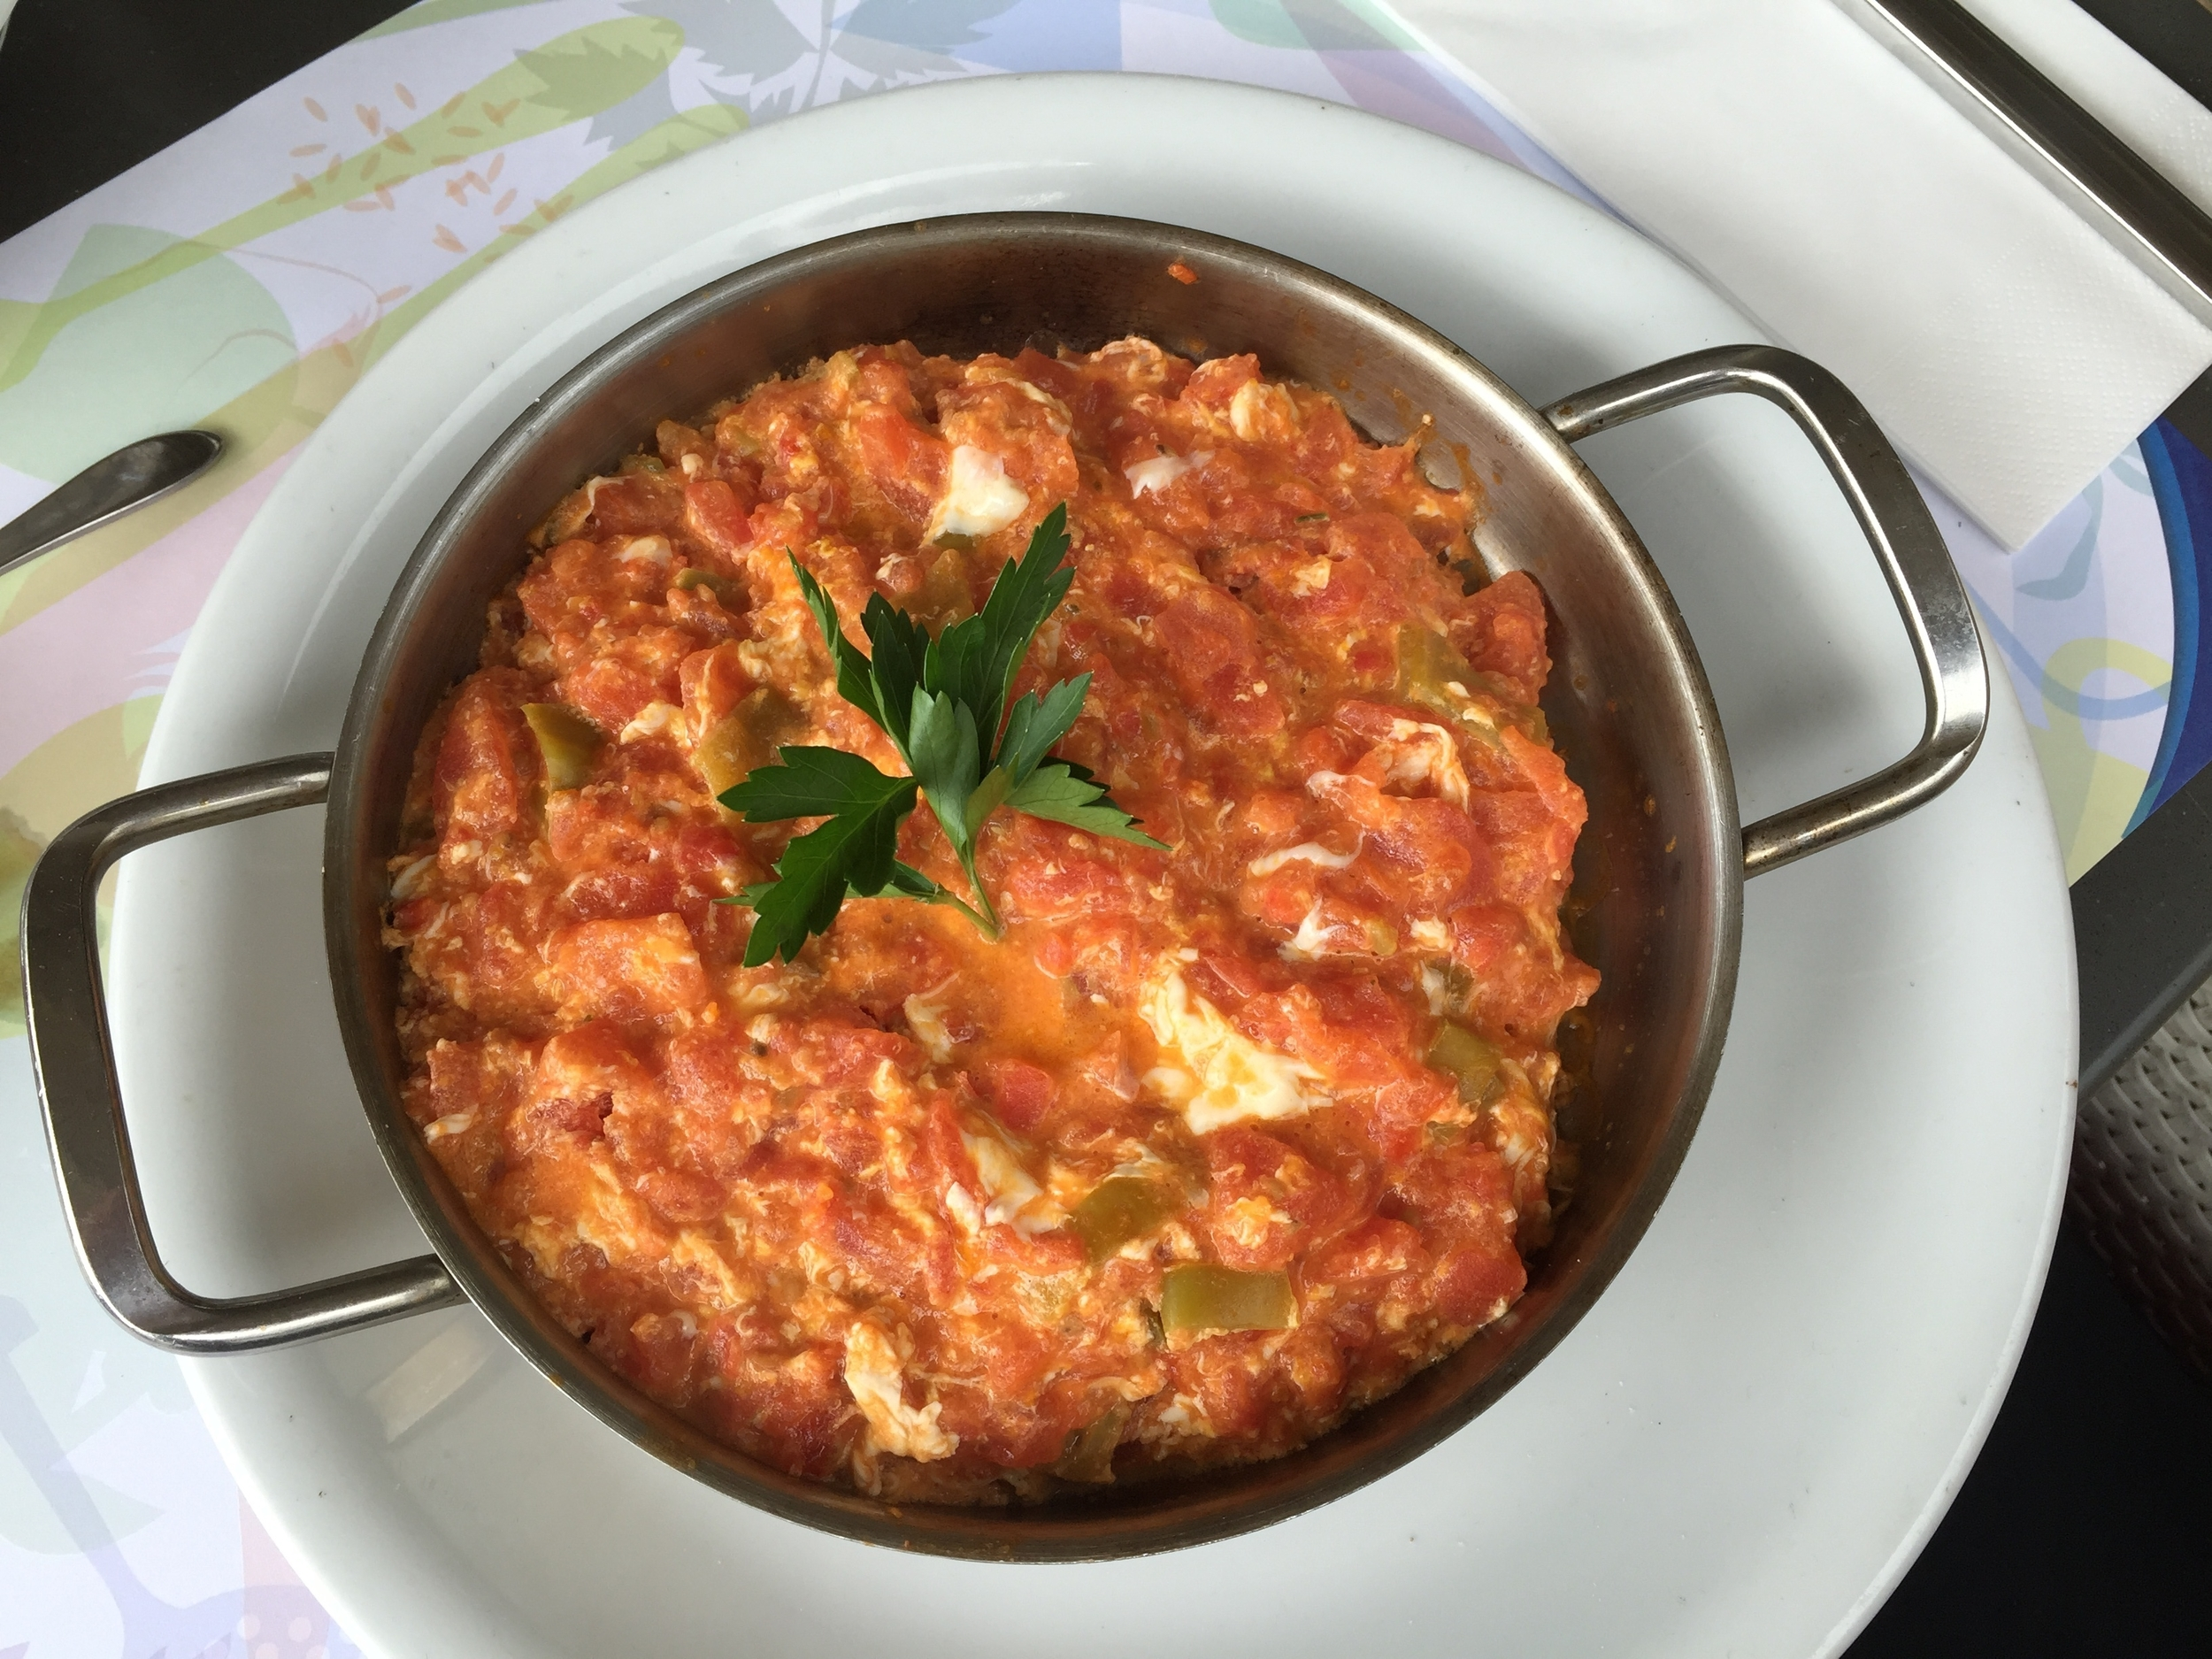 This is menemen. Scrambled eggs with fresh tomatoes.